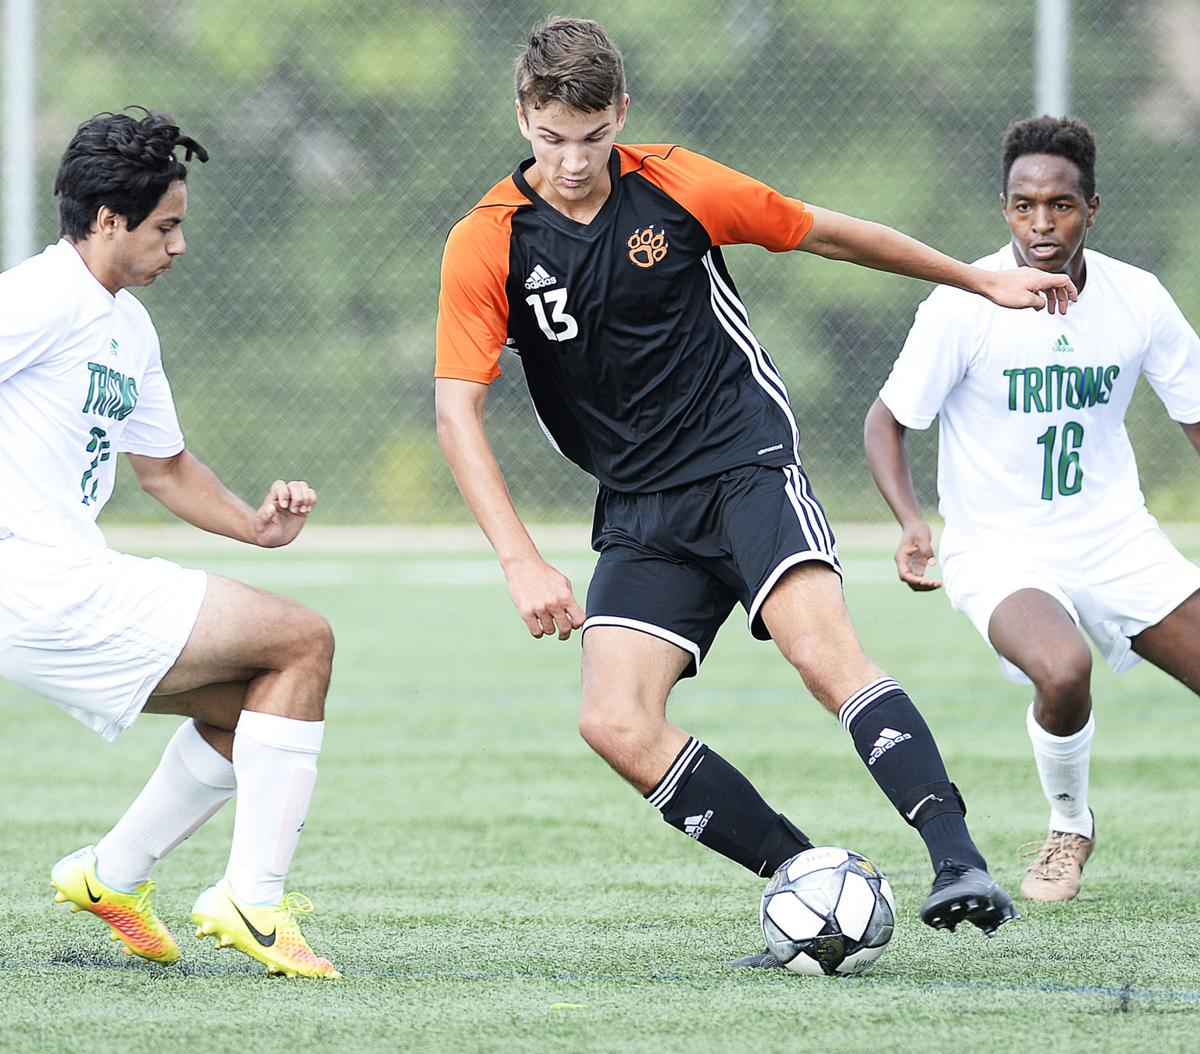 WIAA boys soccer preview: Verona, McFarland draw top seedings in their  divisions | High School Soccer | madison.com